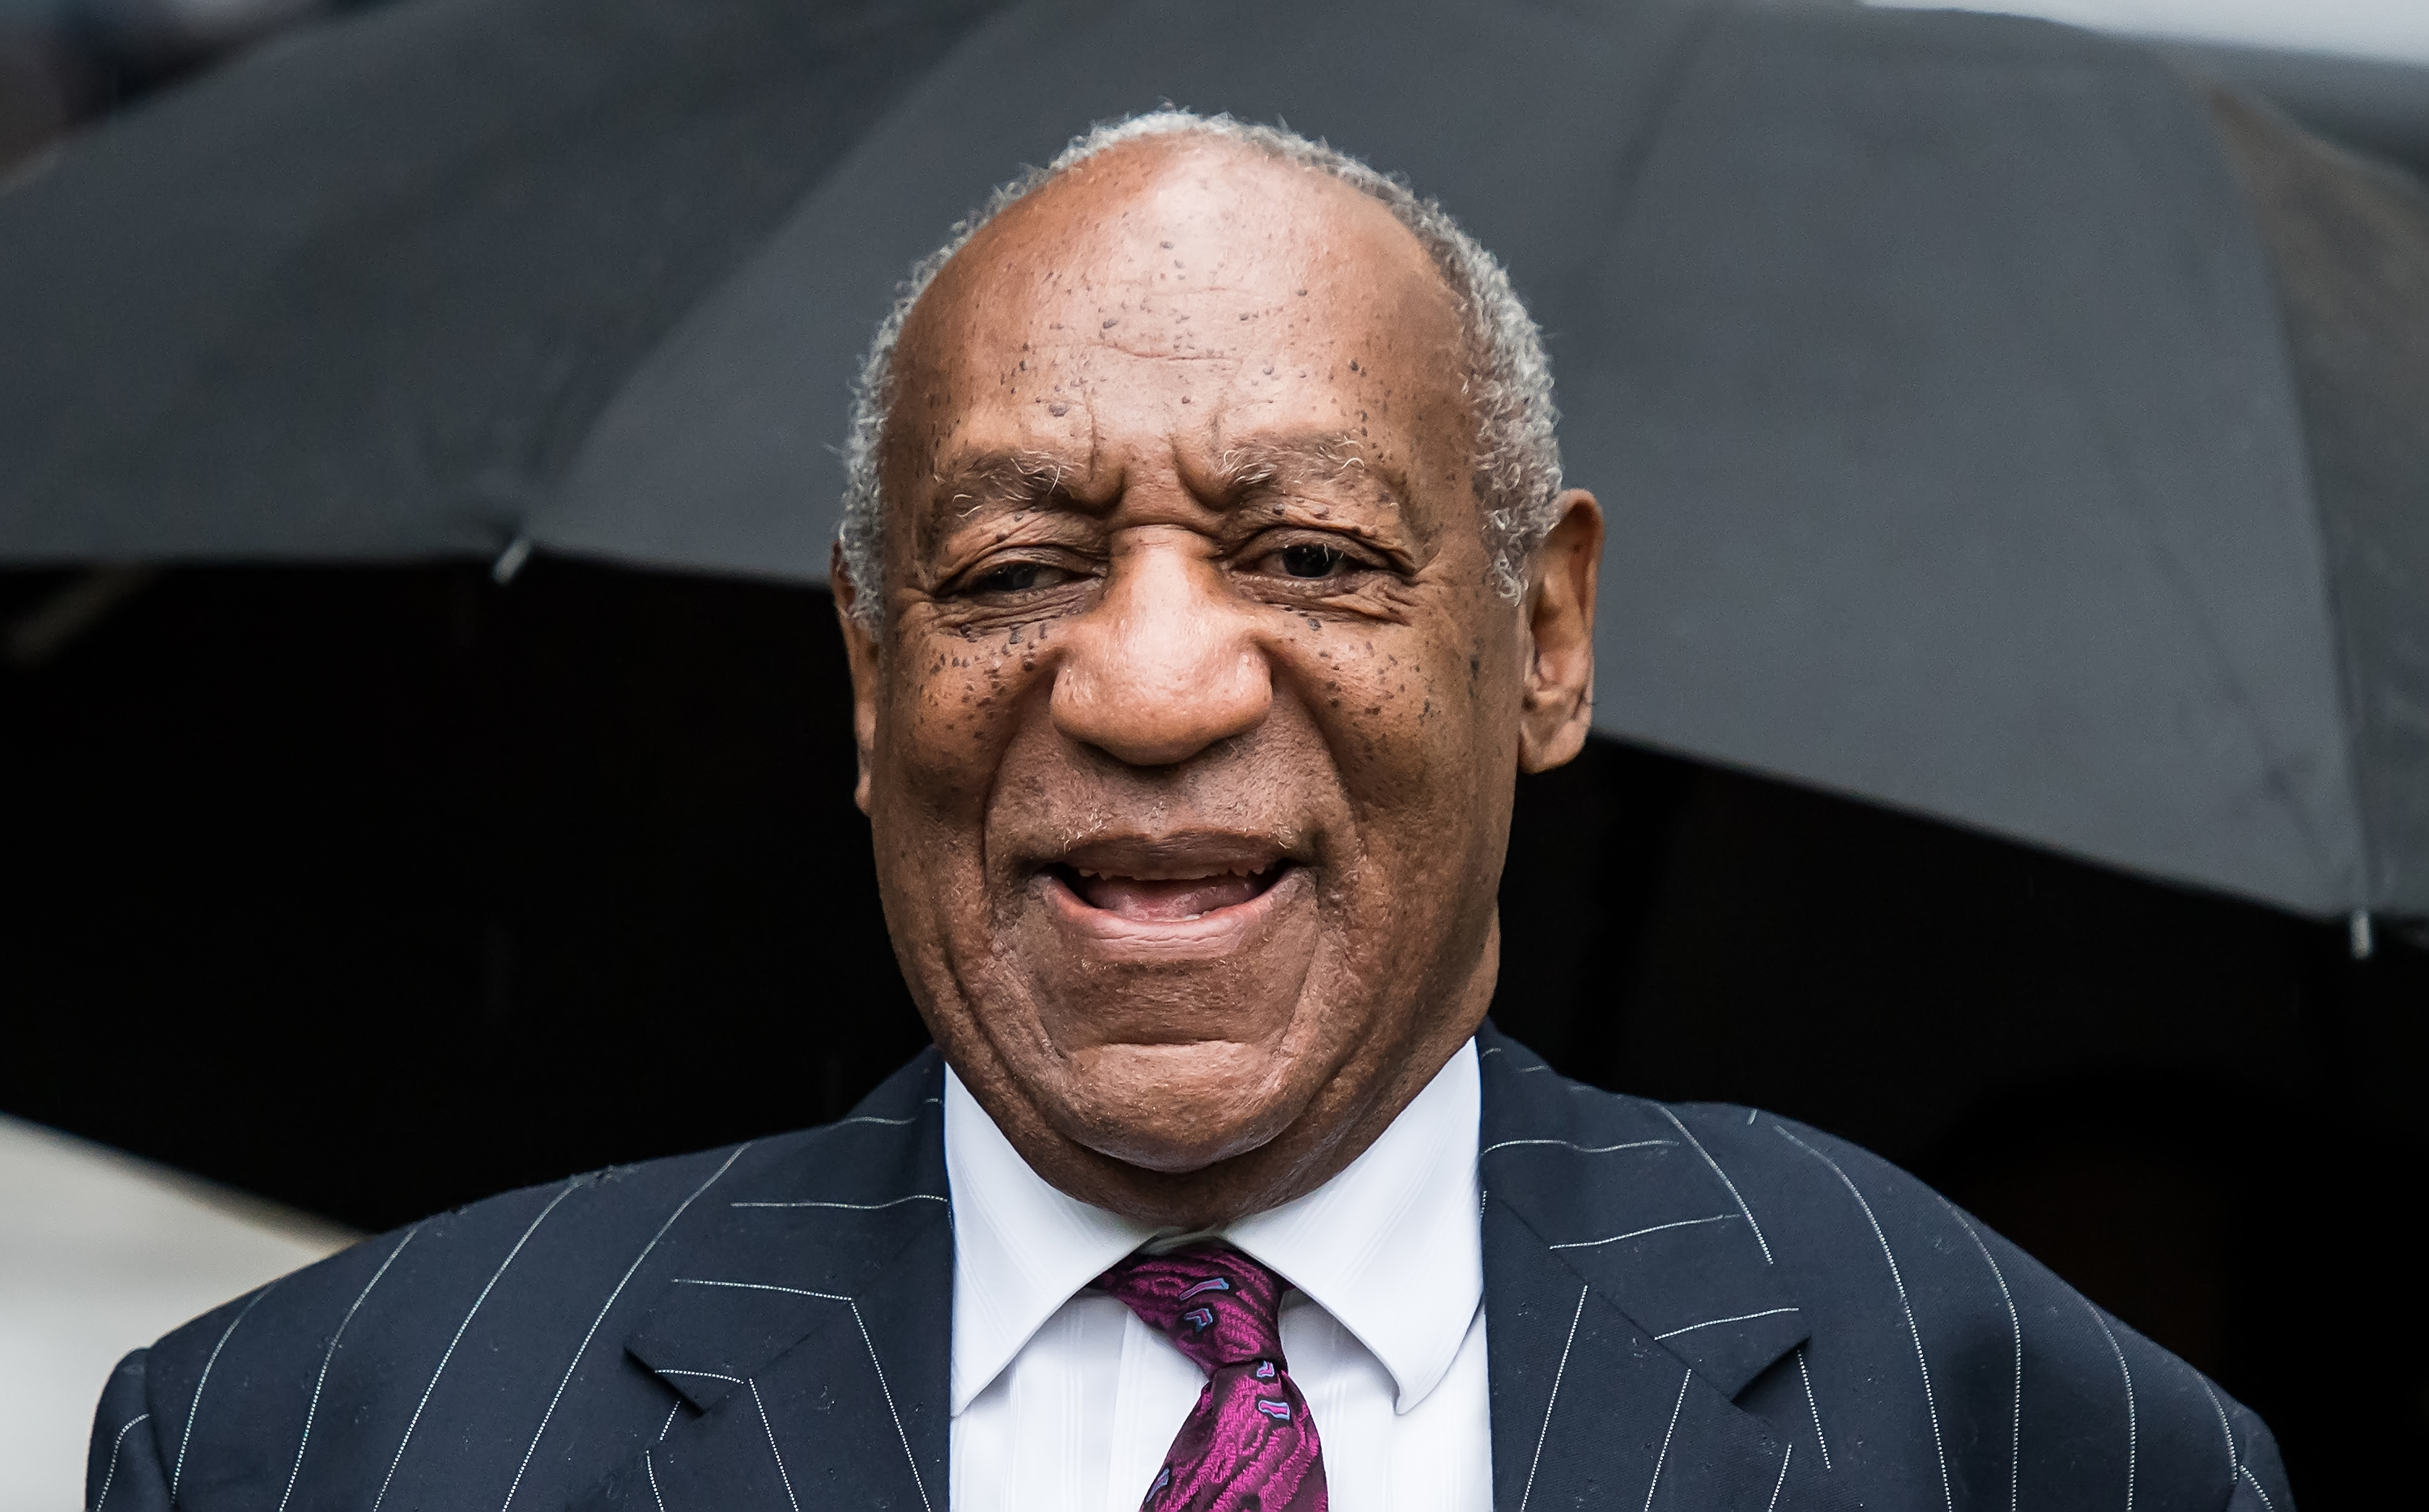 'I have no remorse,' says Cosby